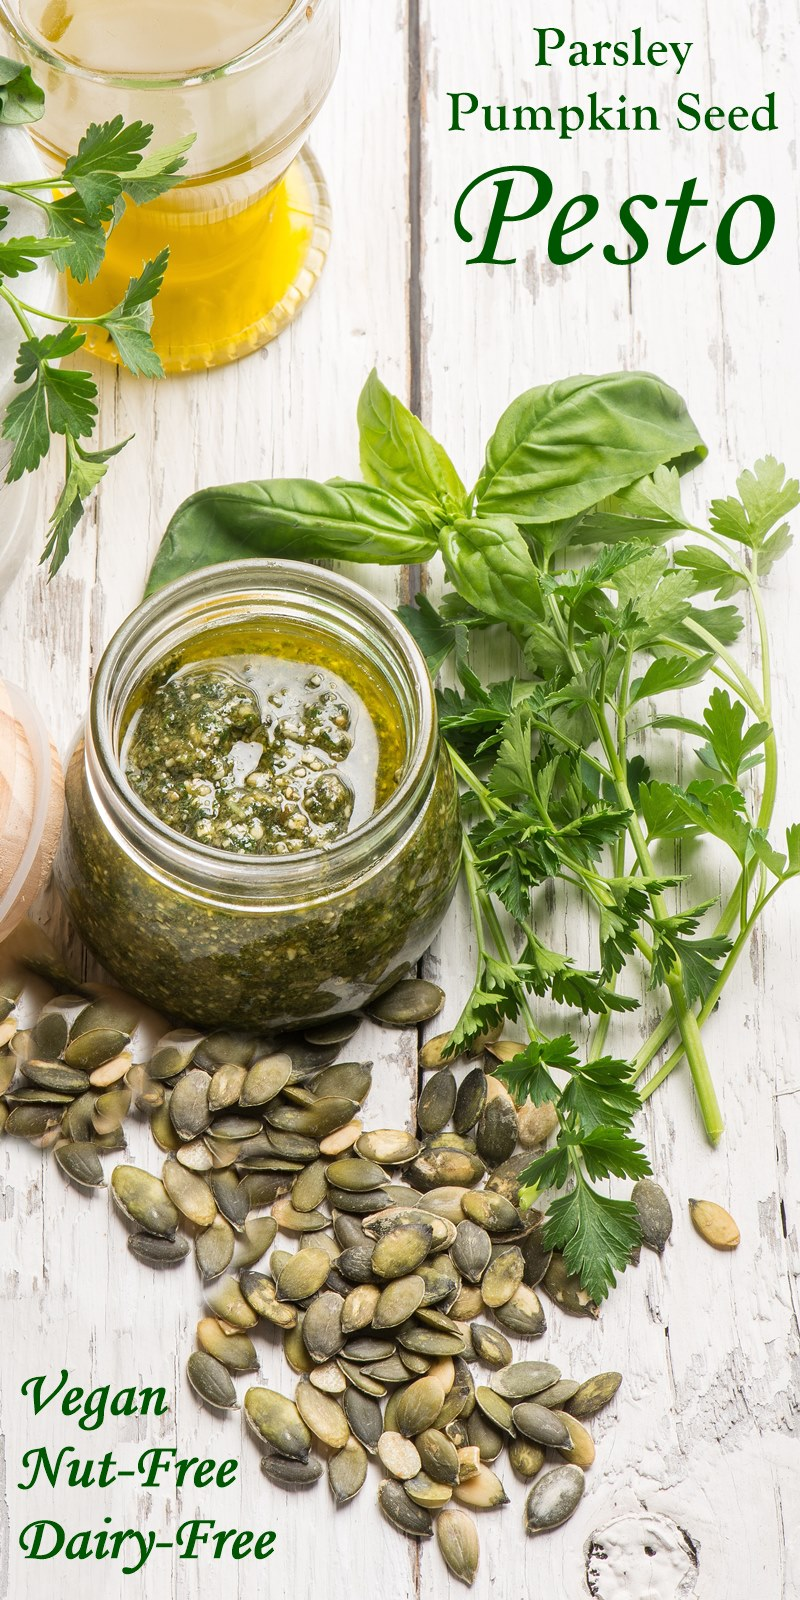 Pumpkin Seed Parsley Pesto Recipe - vegan, dairy-free, nut-free, and allergy-friendly!